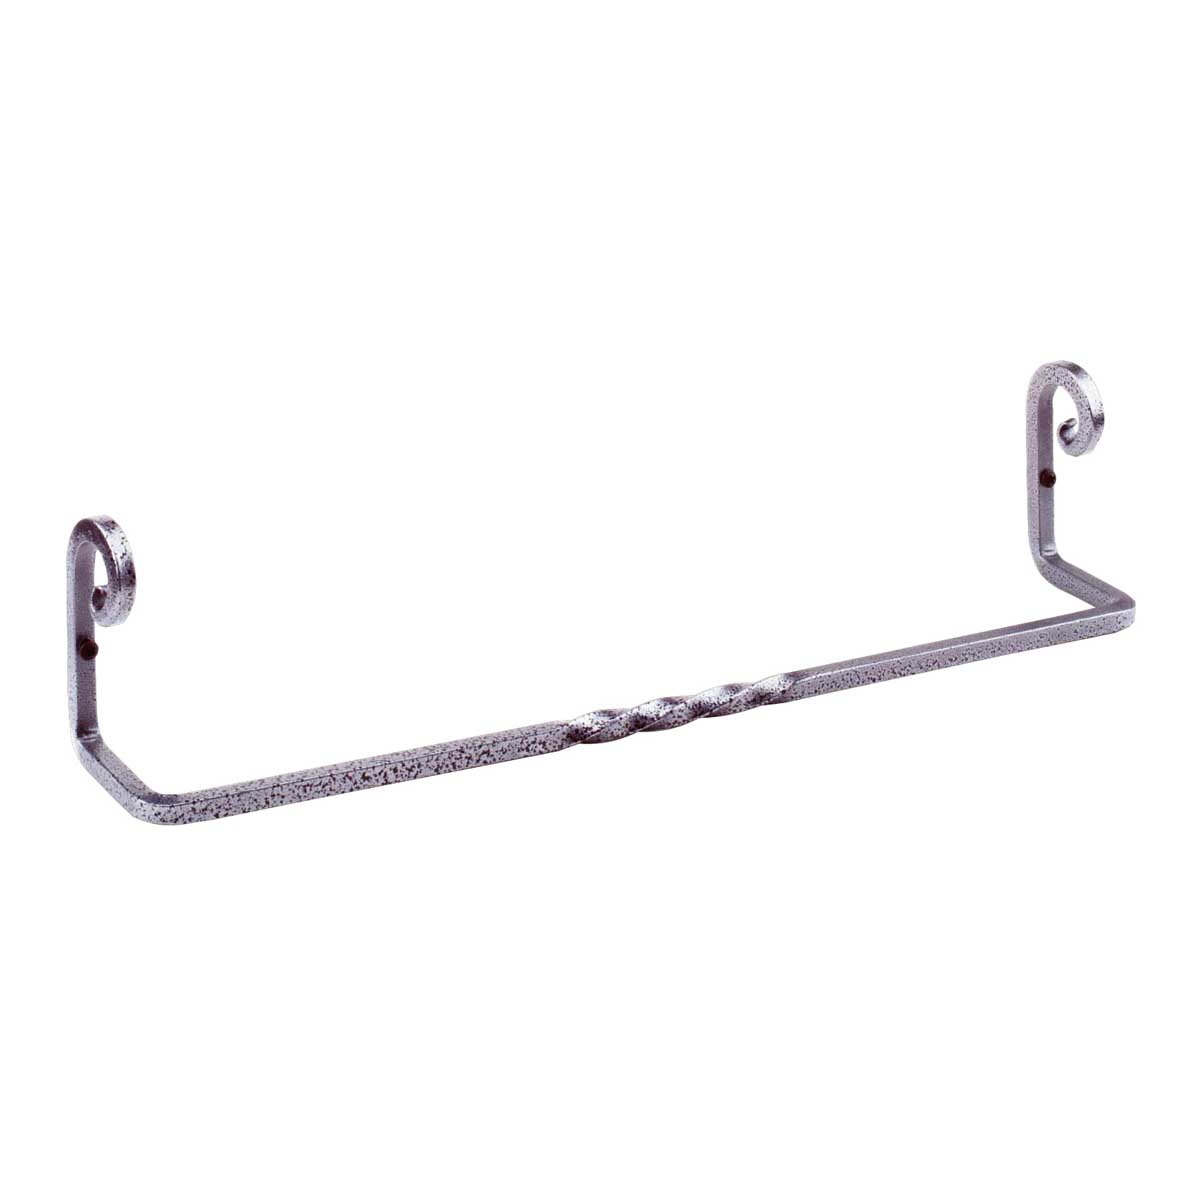 Wrought Iron Towel Bar 18 Inch Silver Pigtail